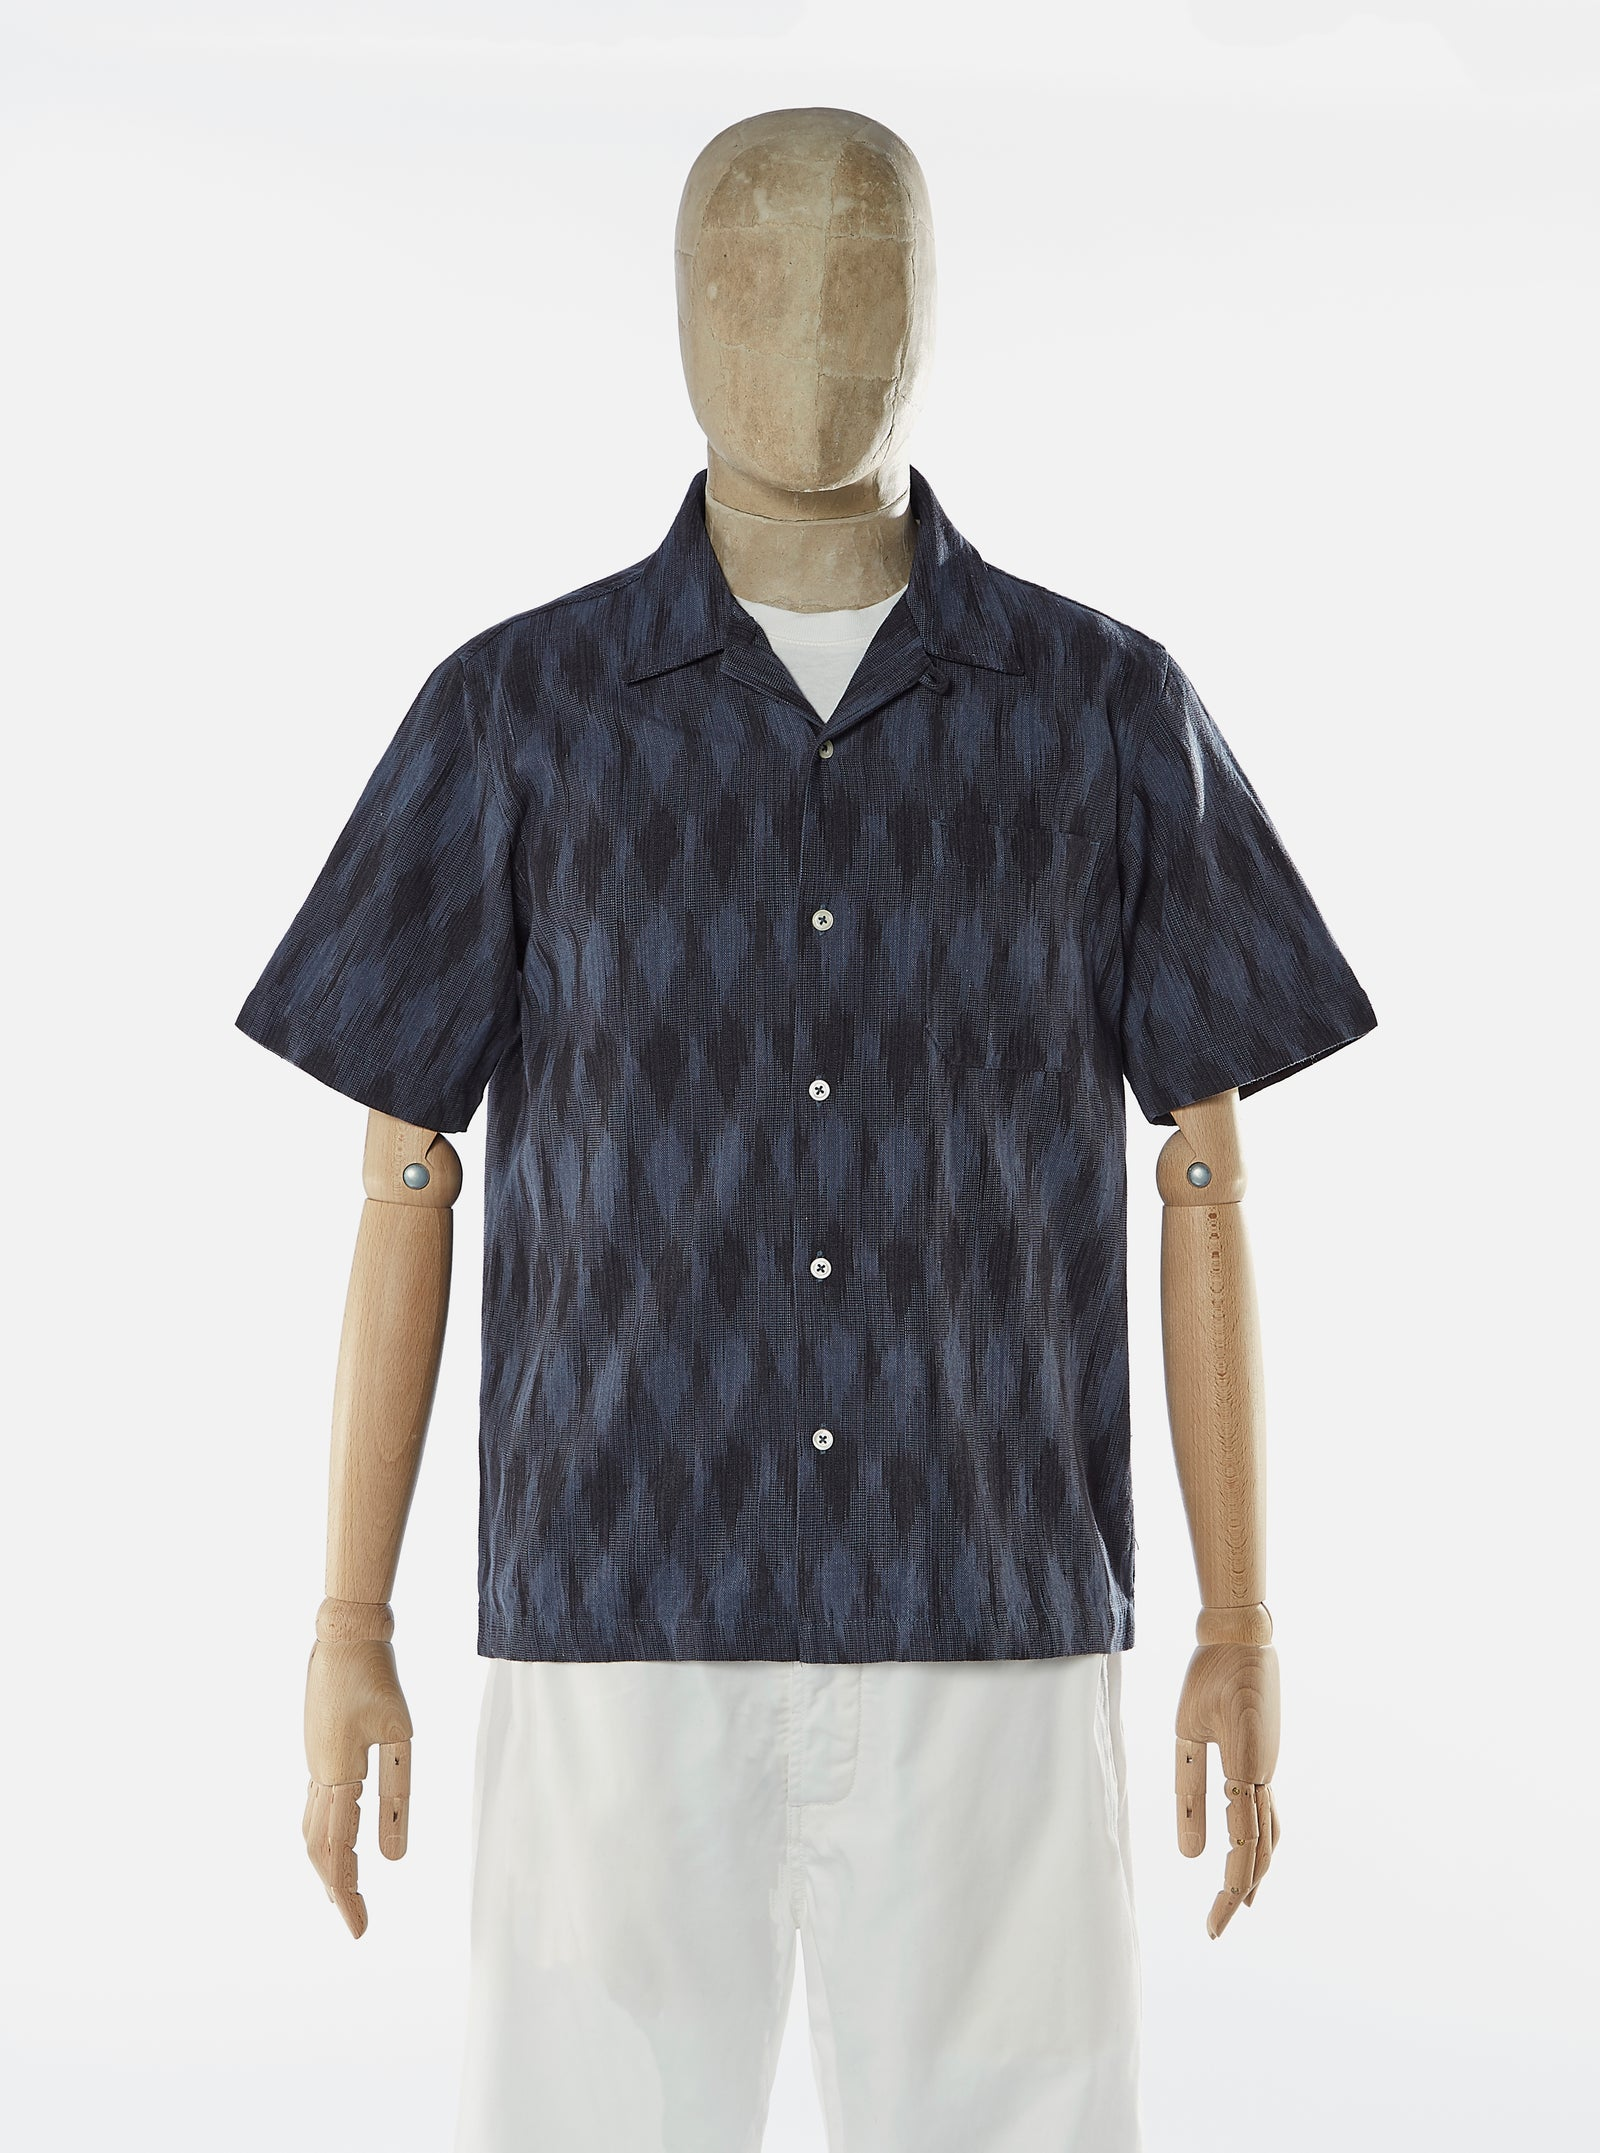 Universal Works Road Shirt in JQ Indigo Handloom Ikat